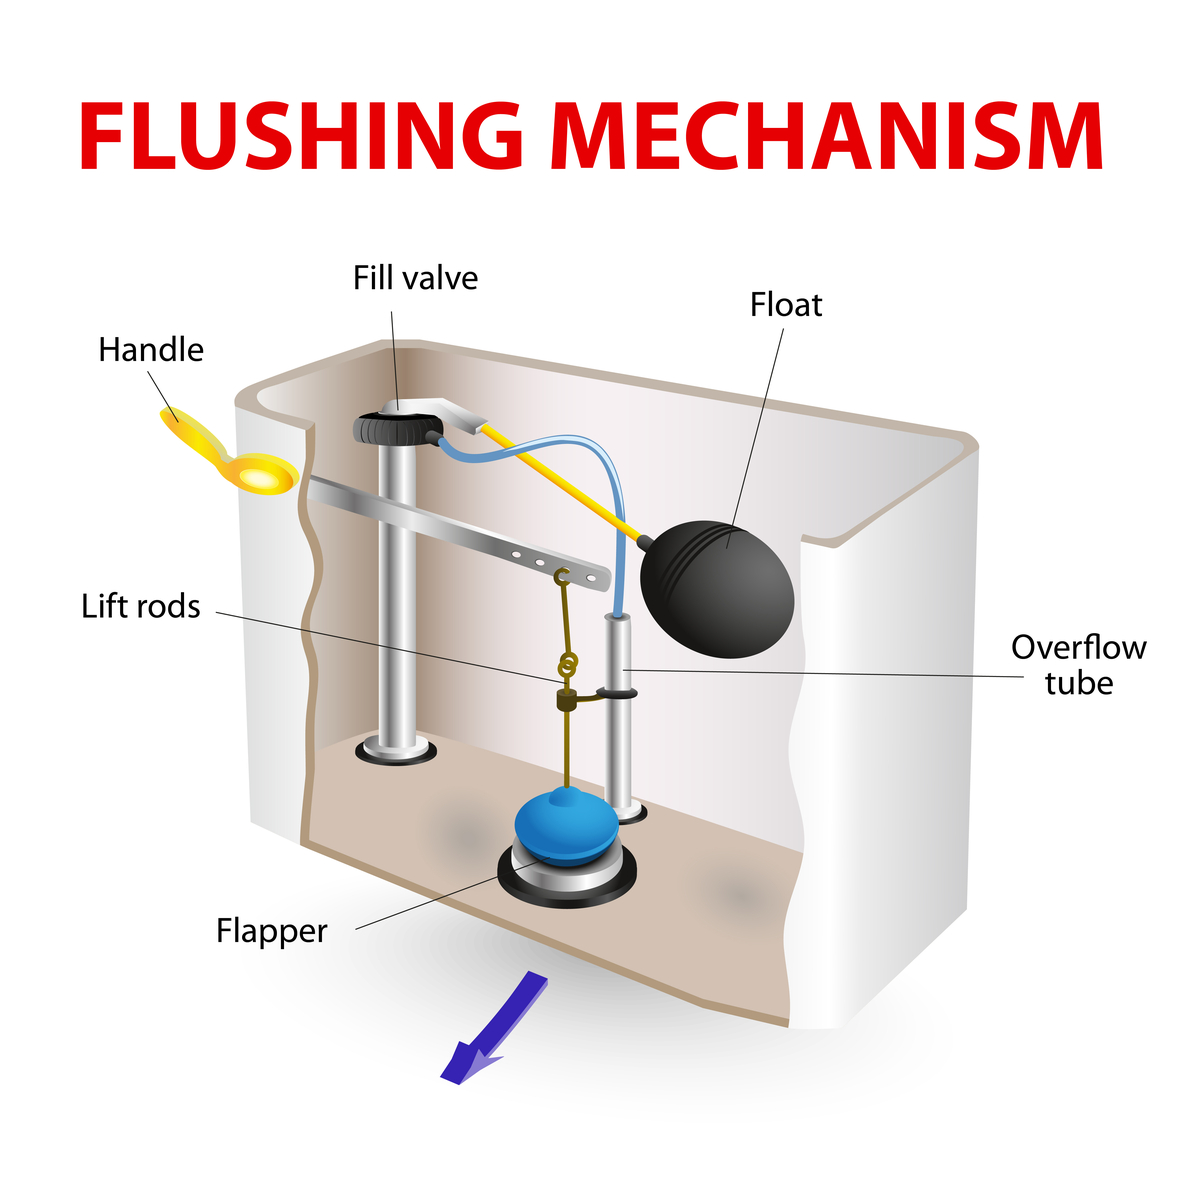 Labeled parts of the flushing mechanism in a standard toilet.